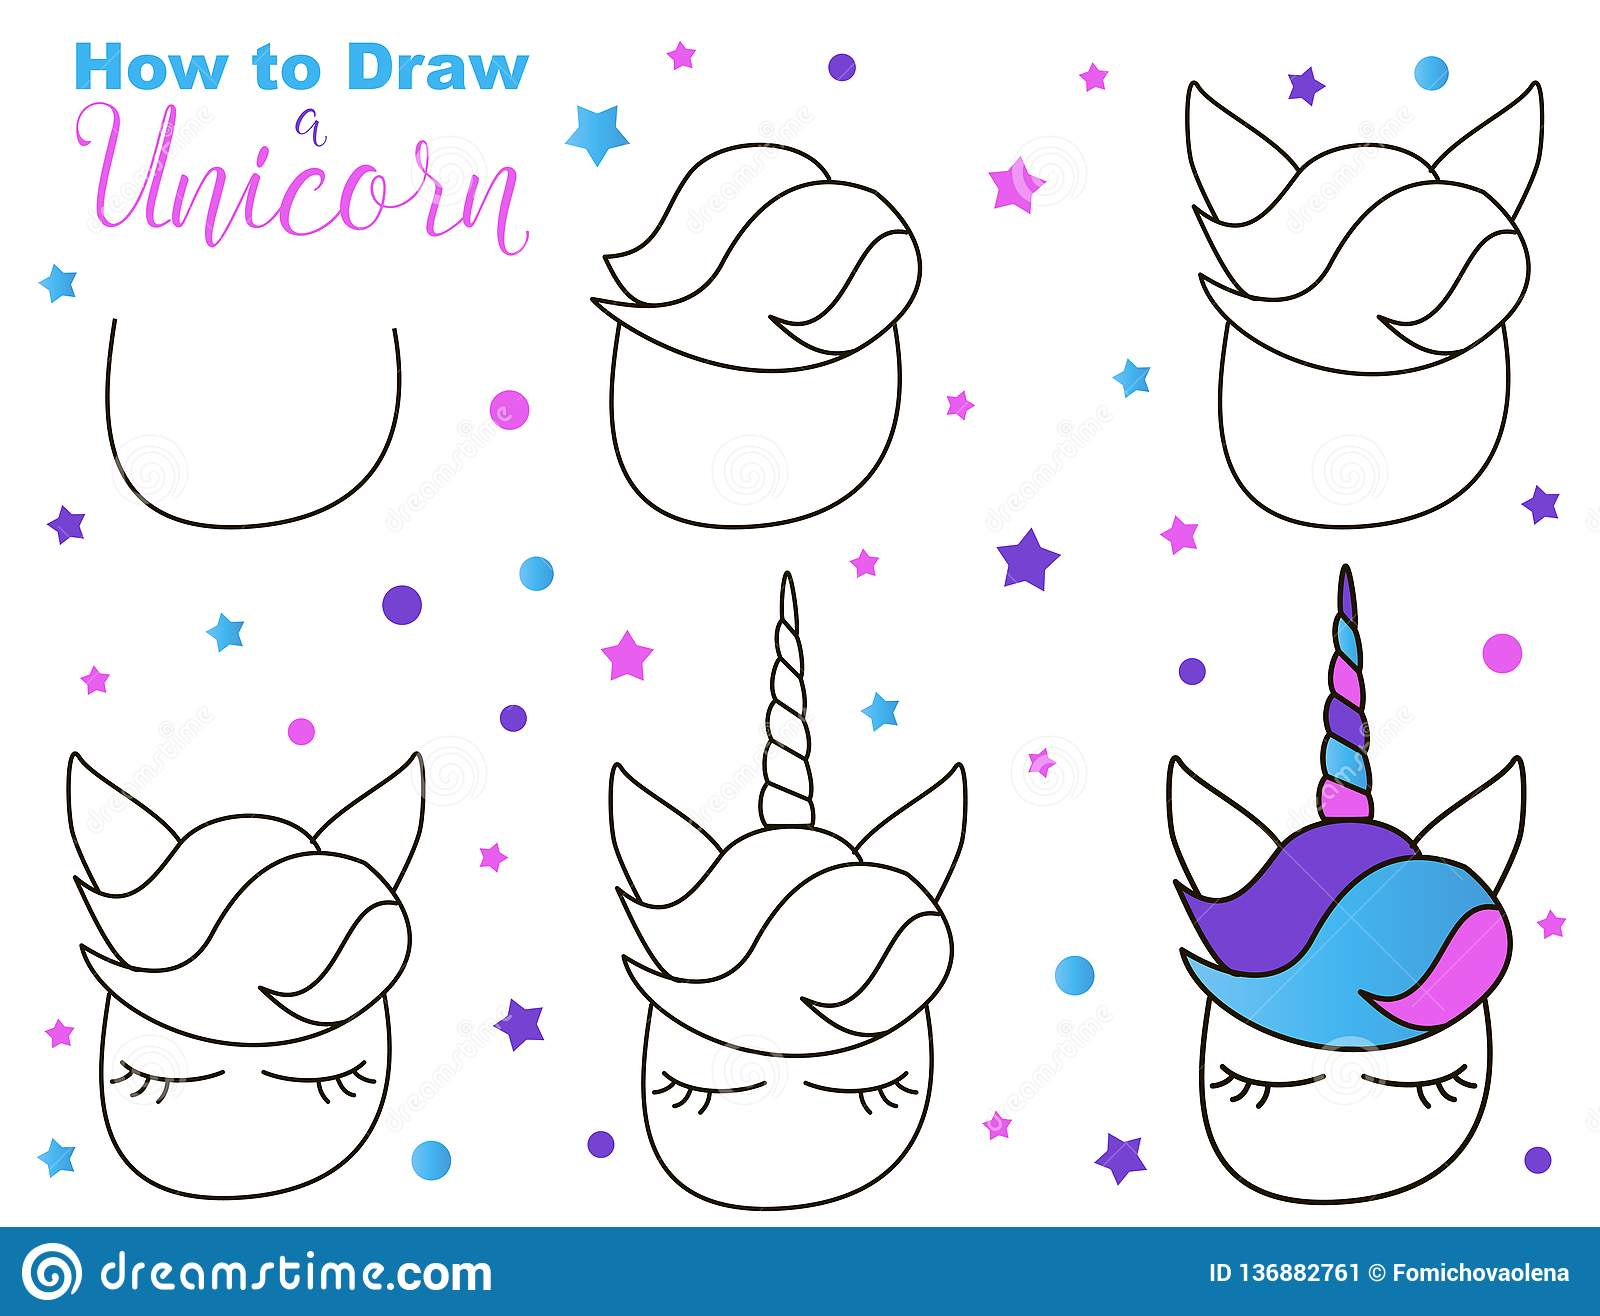 How To Draw Cute Unicorn Easy Steps For Children Activity Kawaii